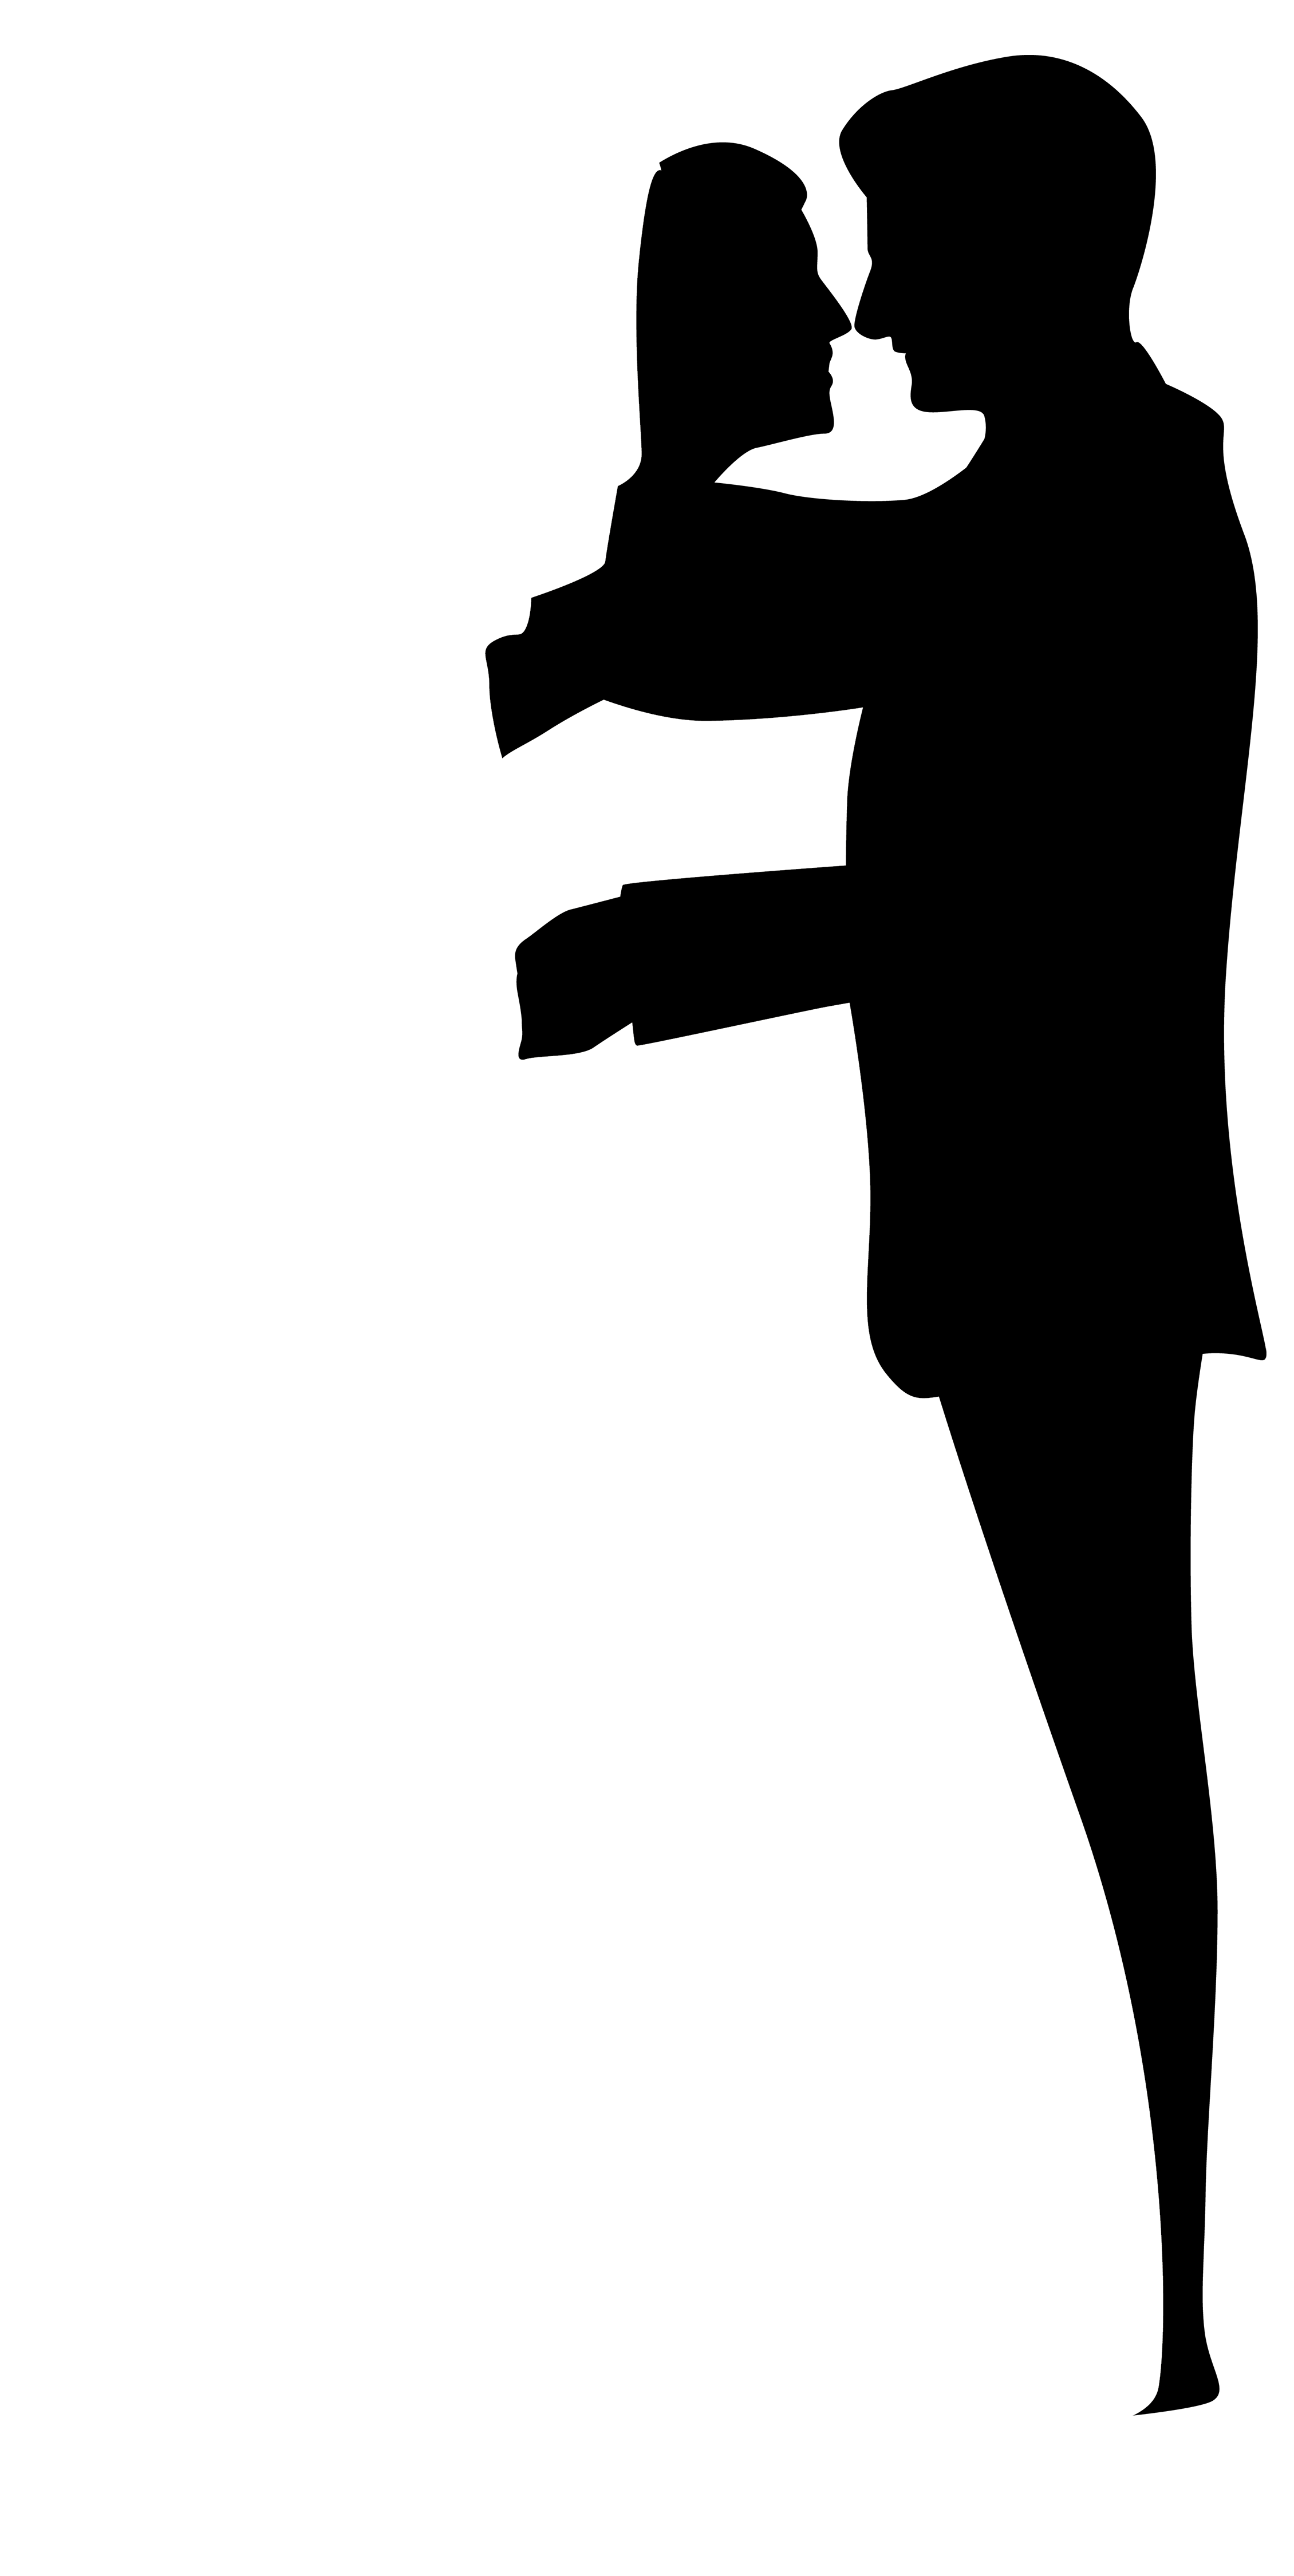 Sillouttes clipart image library House Silhouette Clipart | Free download best House Silhouette ... image library